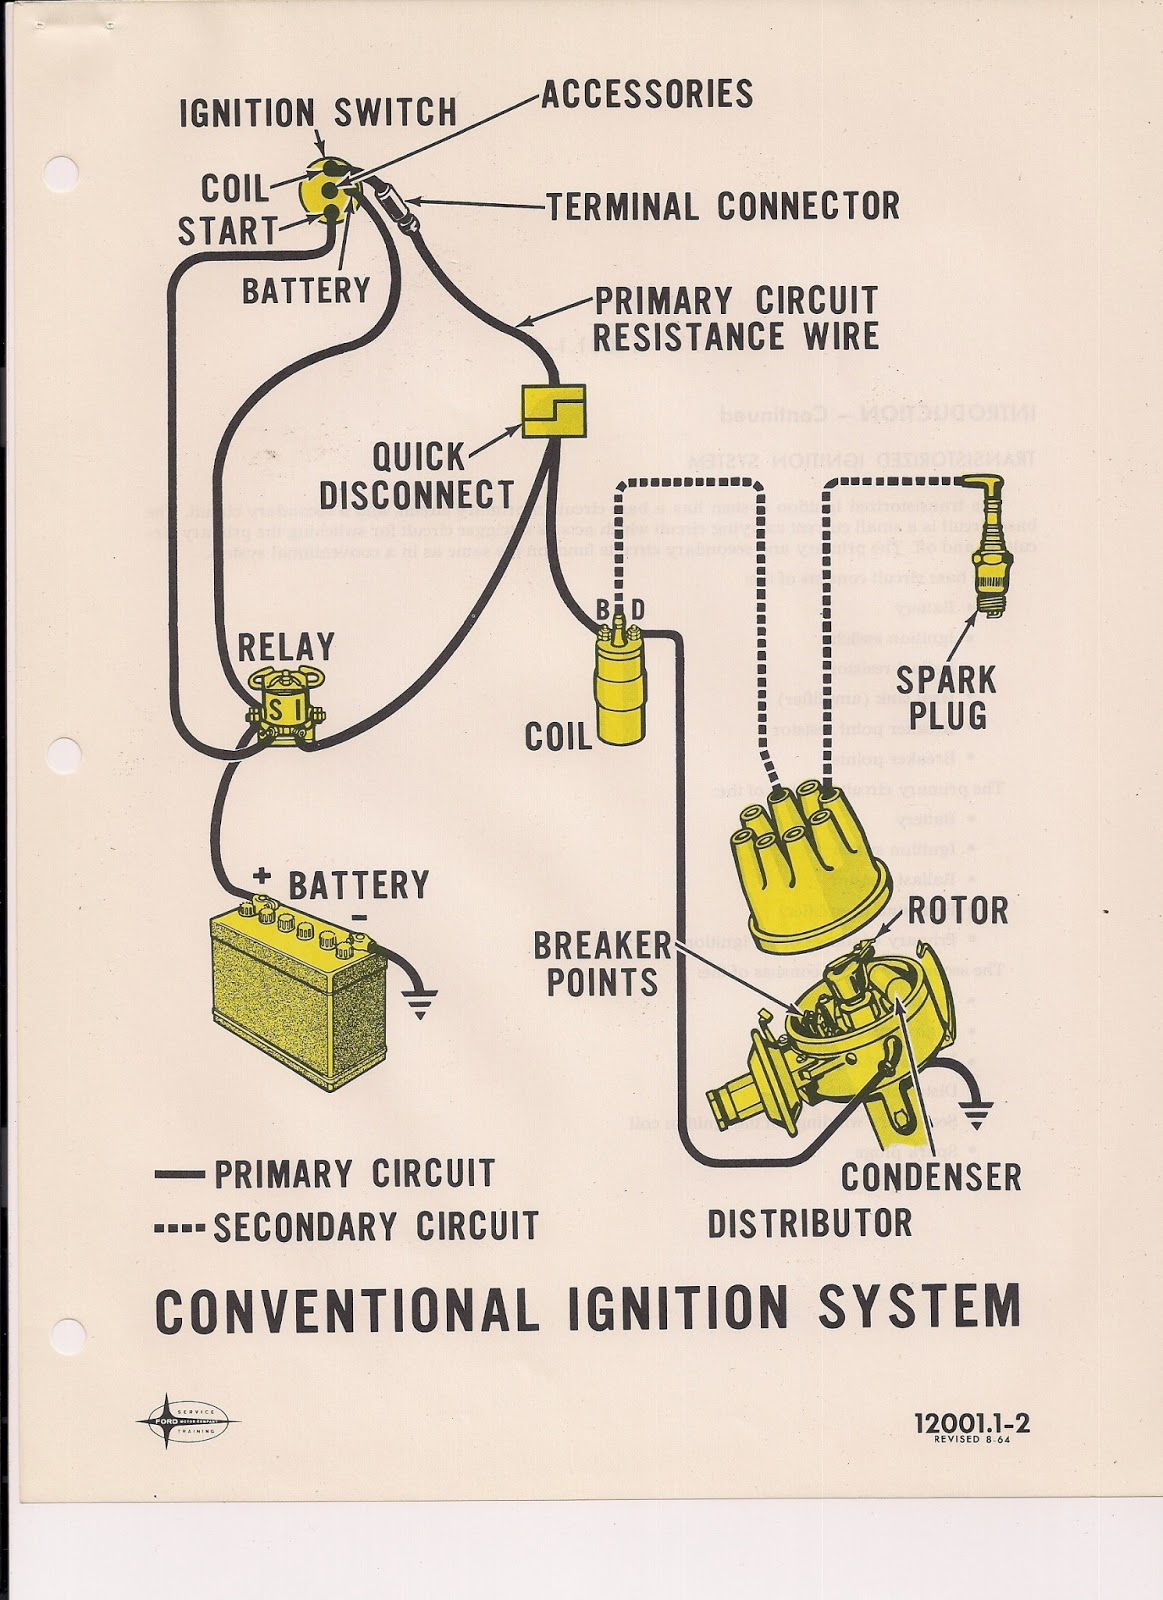 Ignition+1 the care and feeding of ponies mustang ignition system 1965 and 1966 1967 mustang ignition wiring diagram at bayanpartner.co